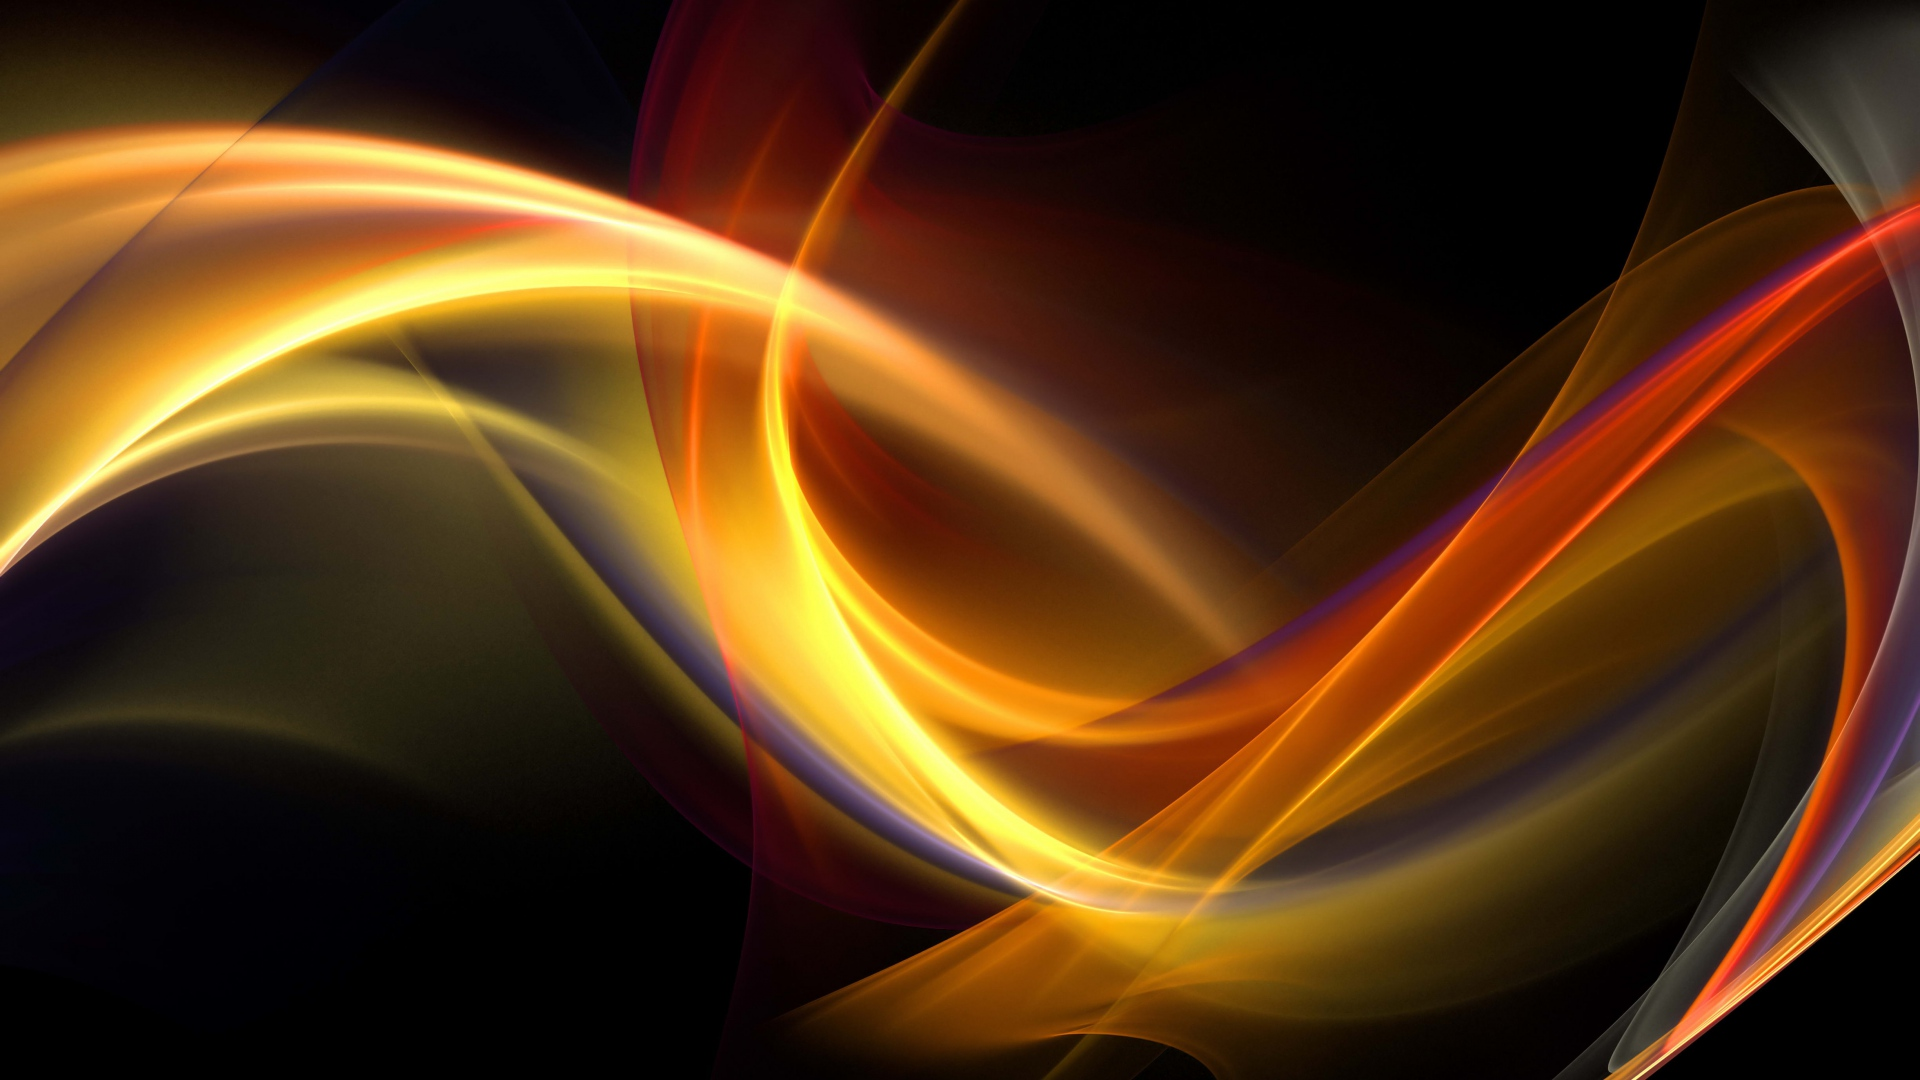 Download Wallpaper 1920x1080 abstract, black background ...